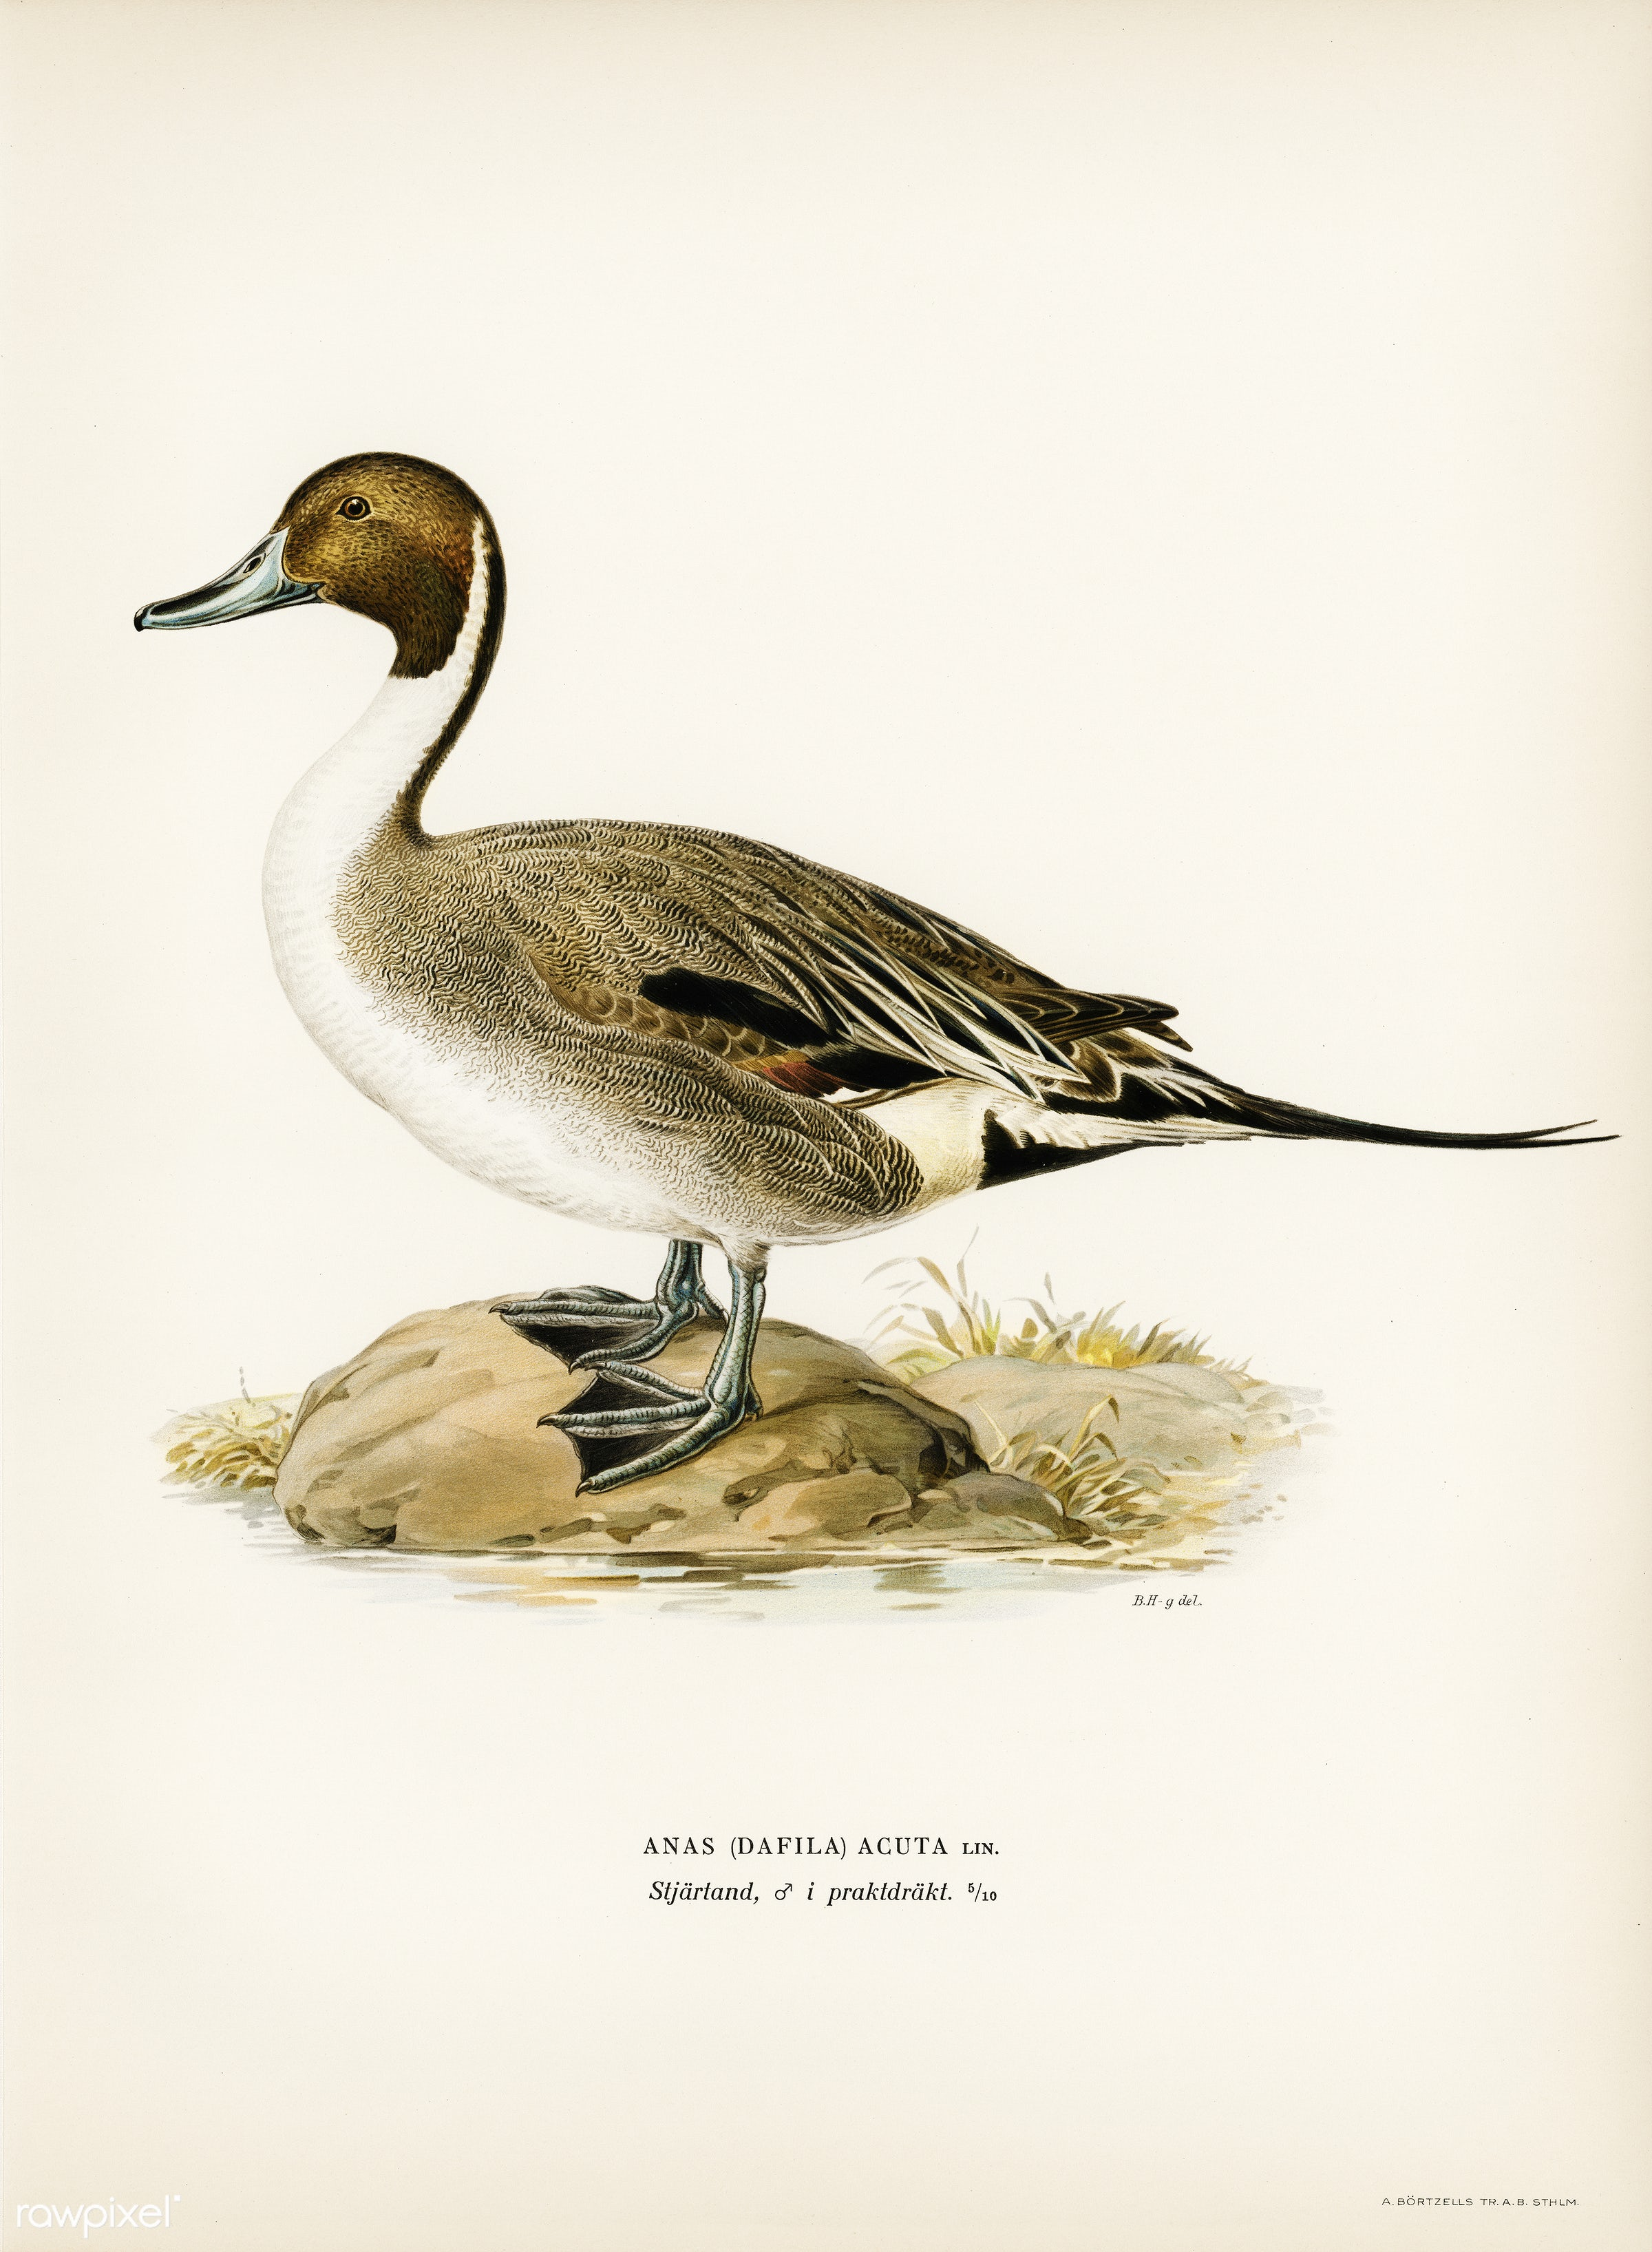 Northern Pintail (Anas(dafila) acuta) illustrated by the von Wright brothers. Digitally enhanced from our own 1929 folio...